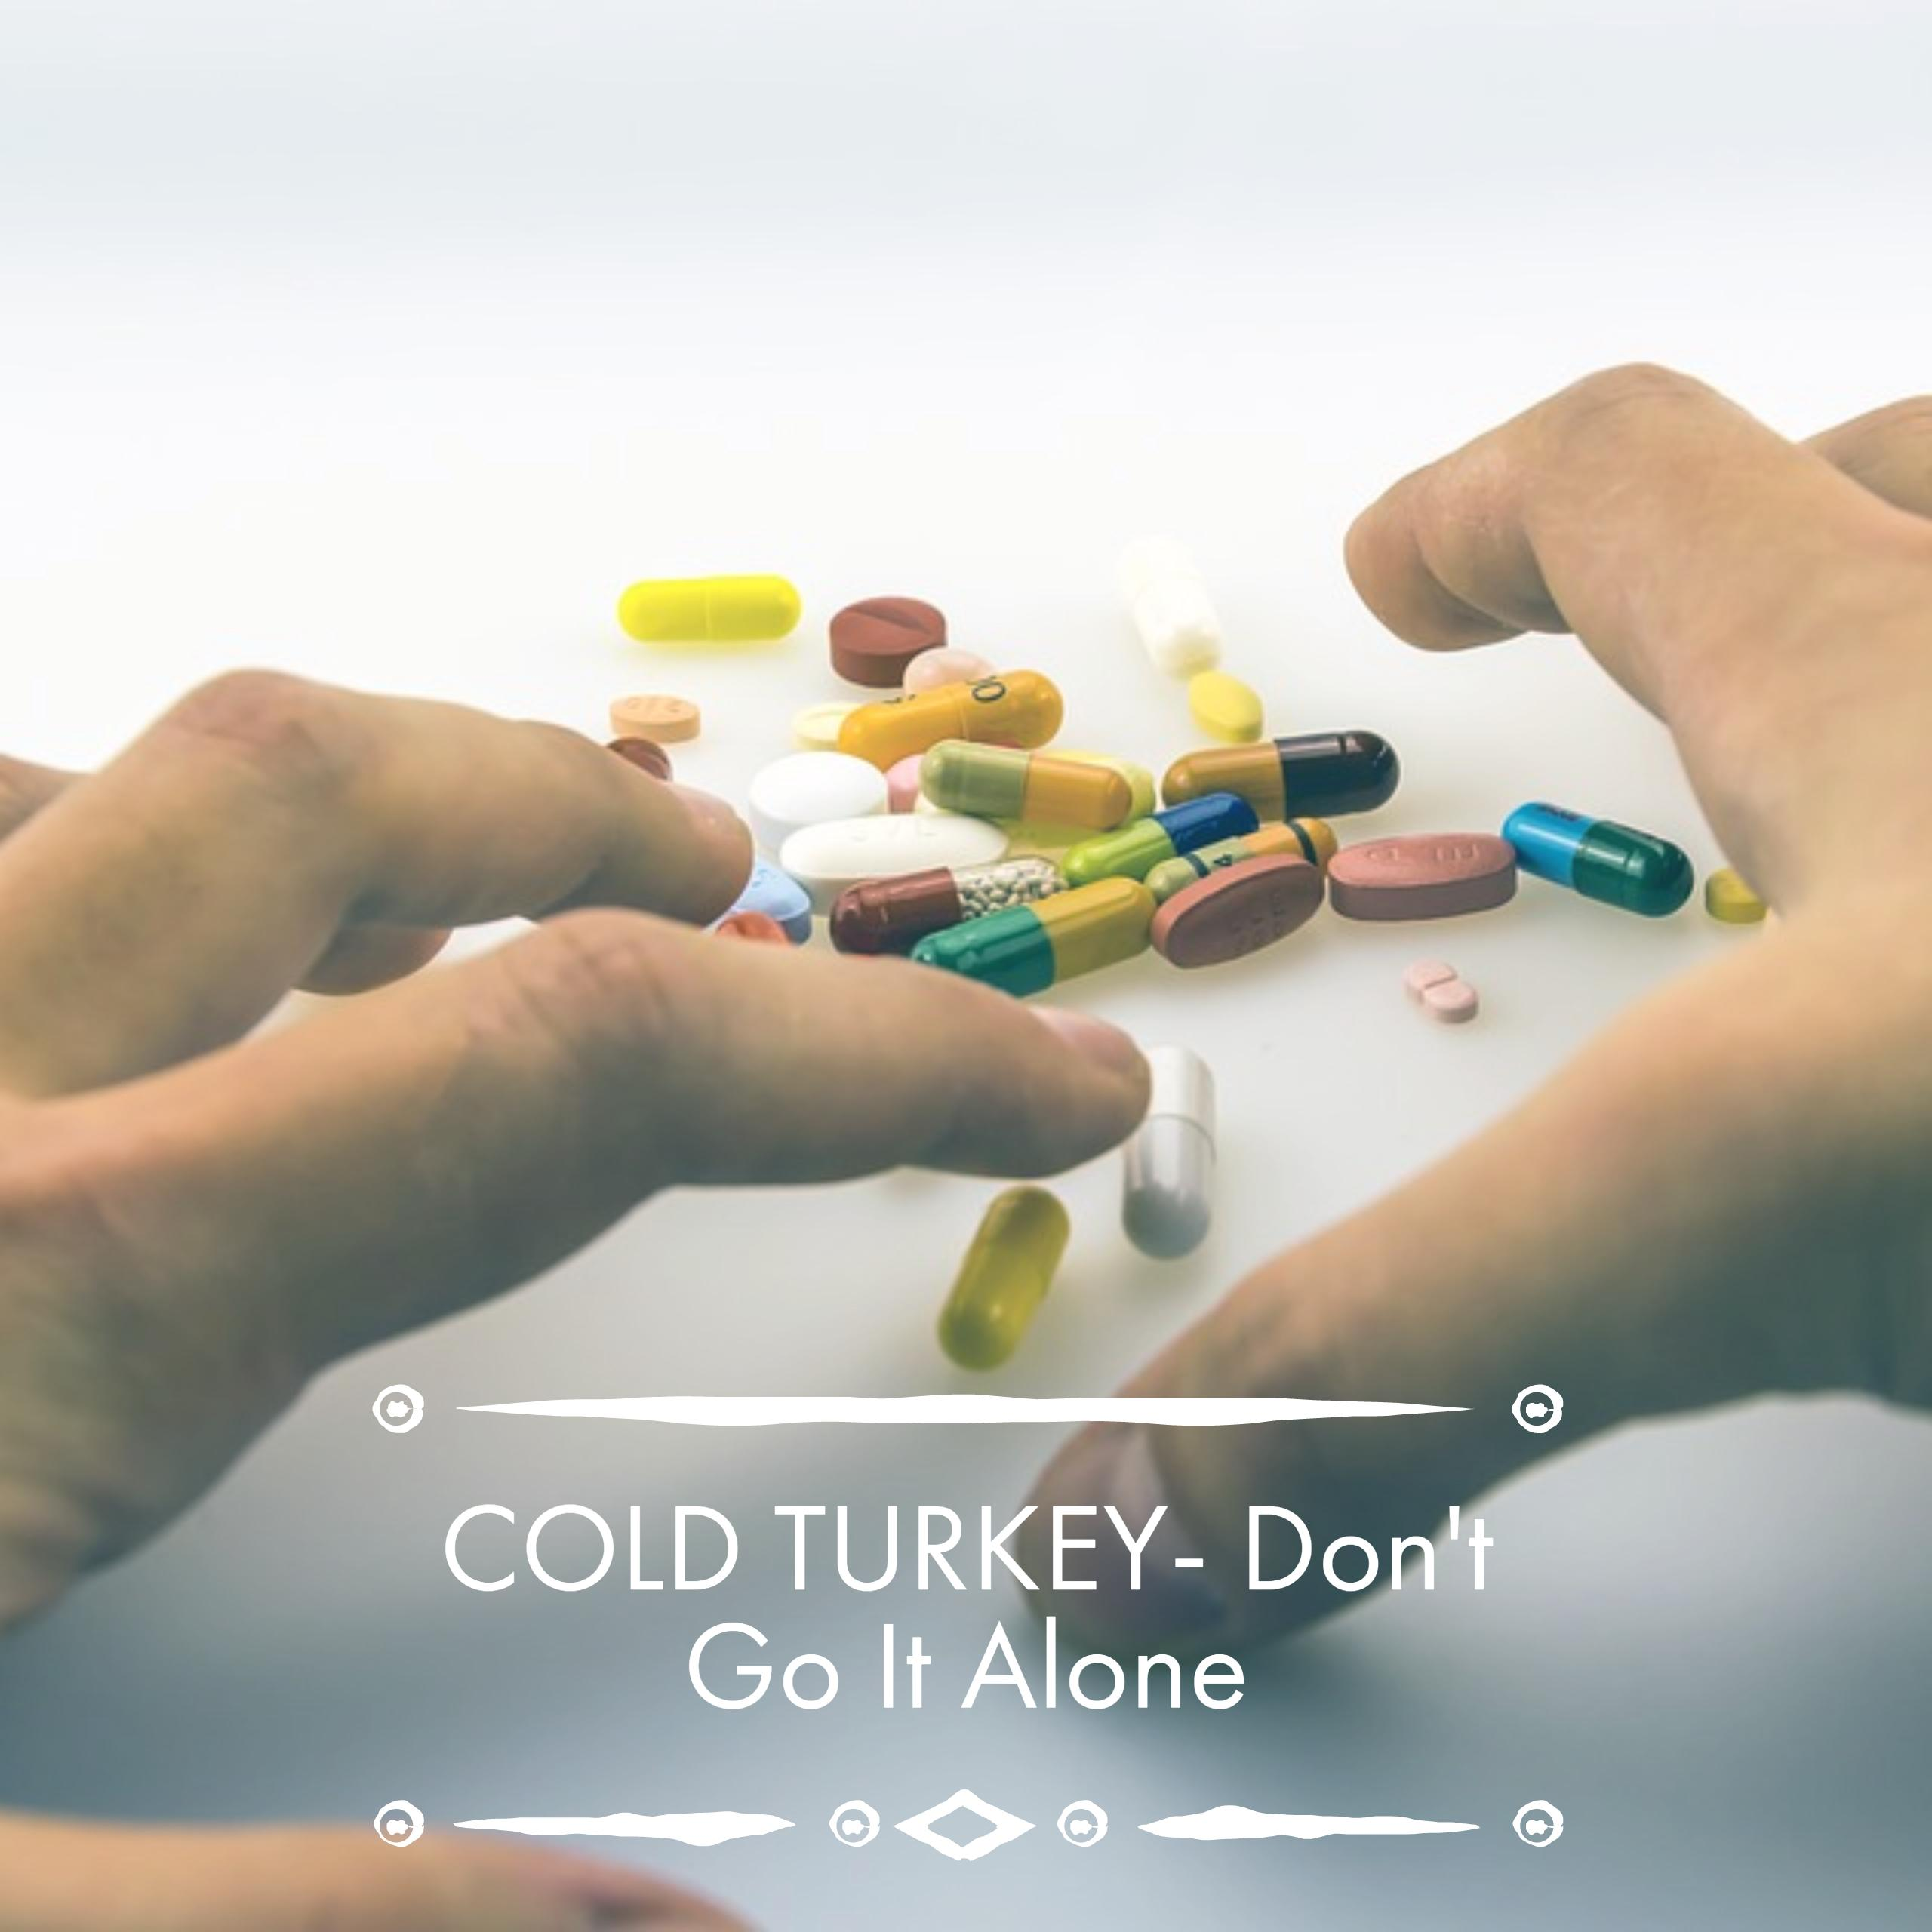 medical detox centers take a stand against going cold turkey medical detox centers take a stand against going cold turkey out supervision